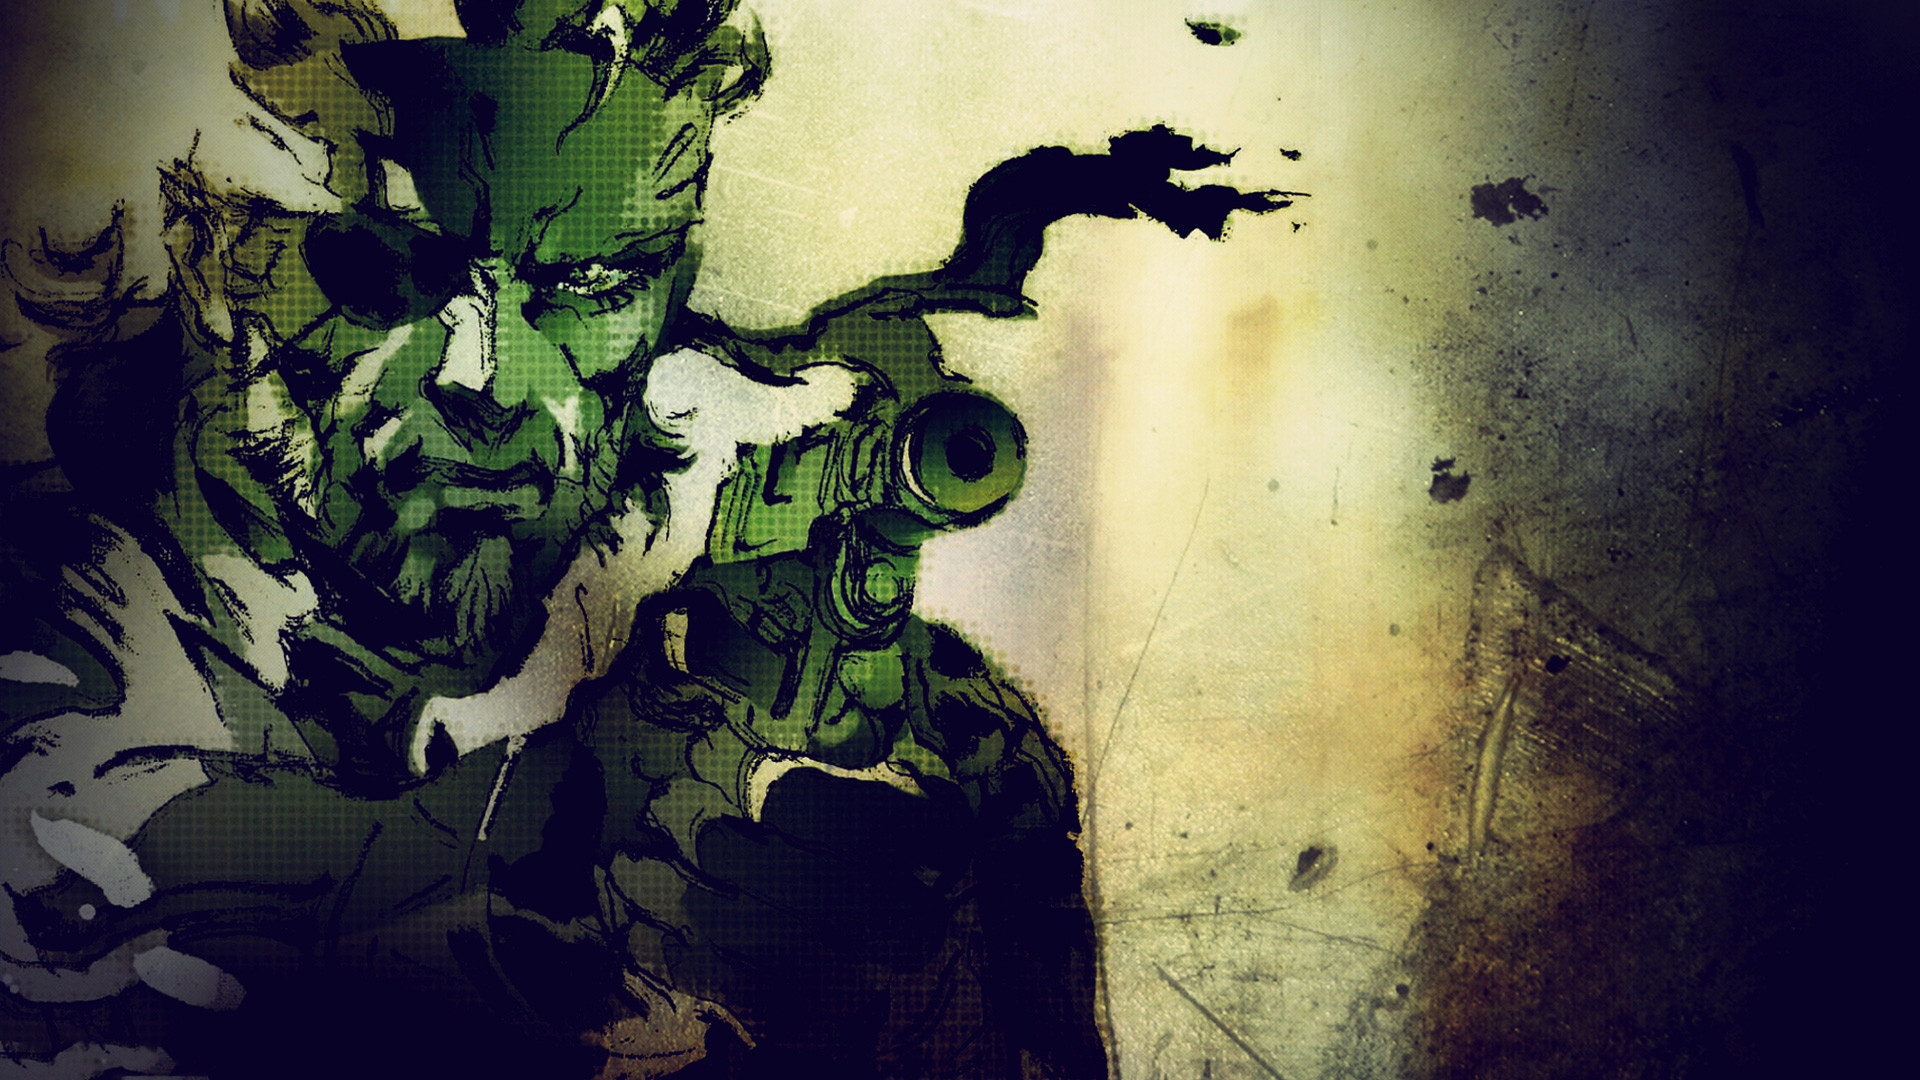 Metal Gear Solid 3 Wallpaper 1920x1080 73 Images